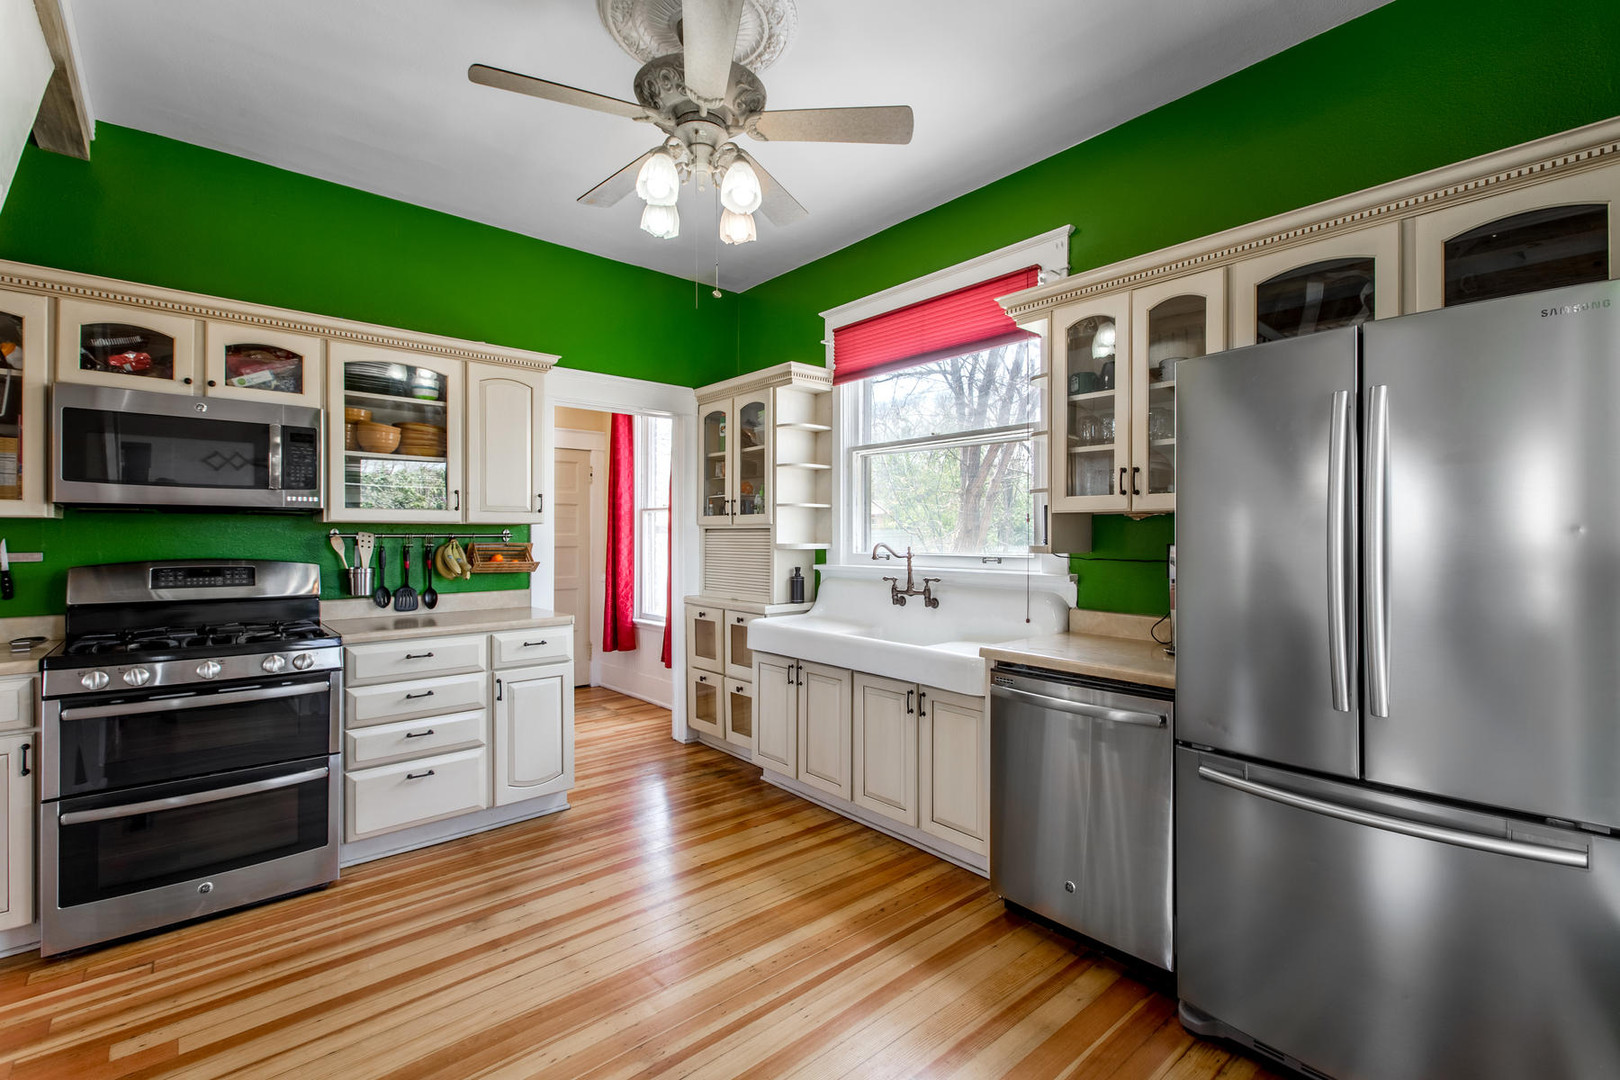 4795 Newland Street-008-28-Kitchen-MLS_S